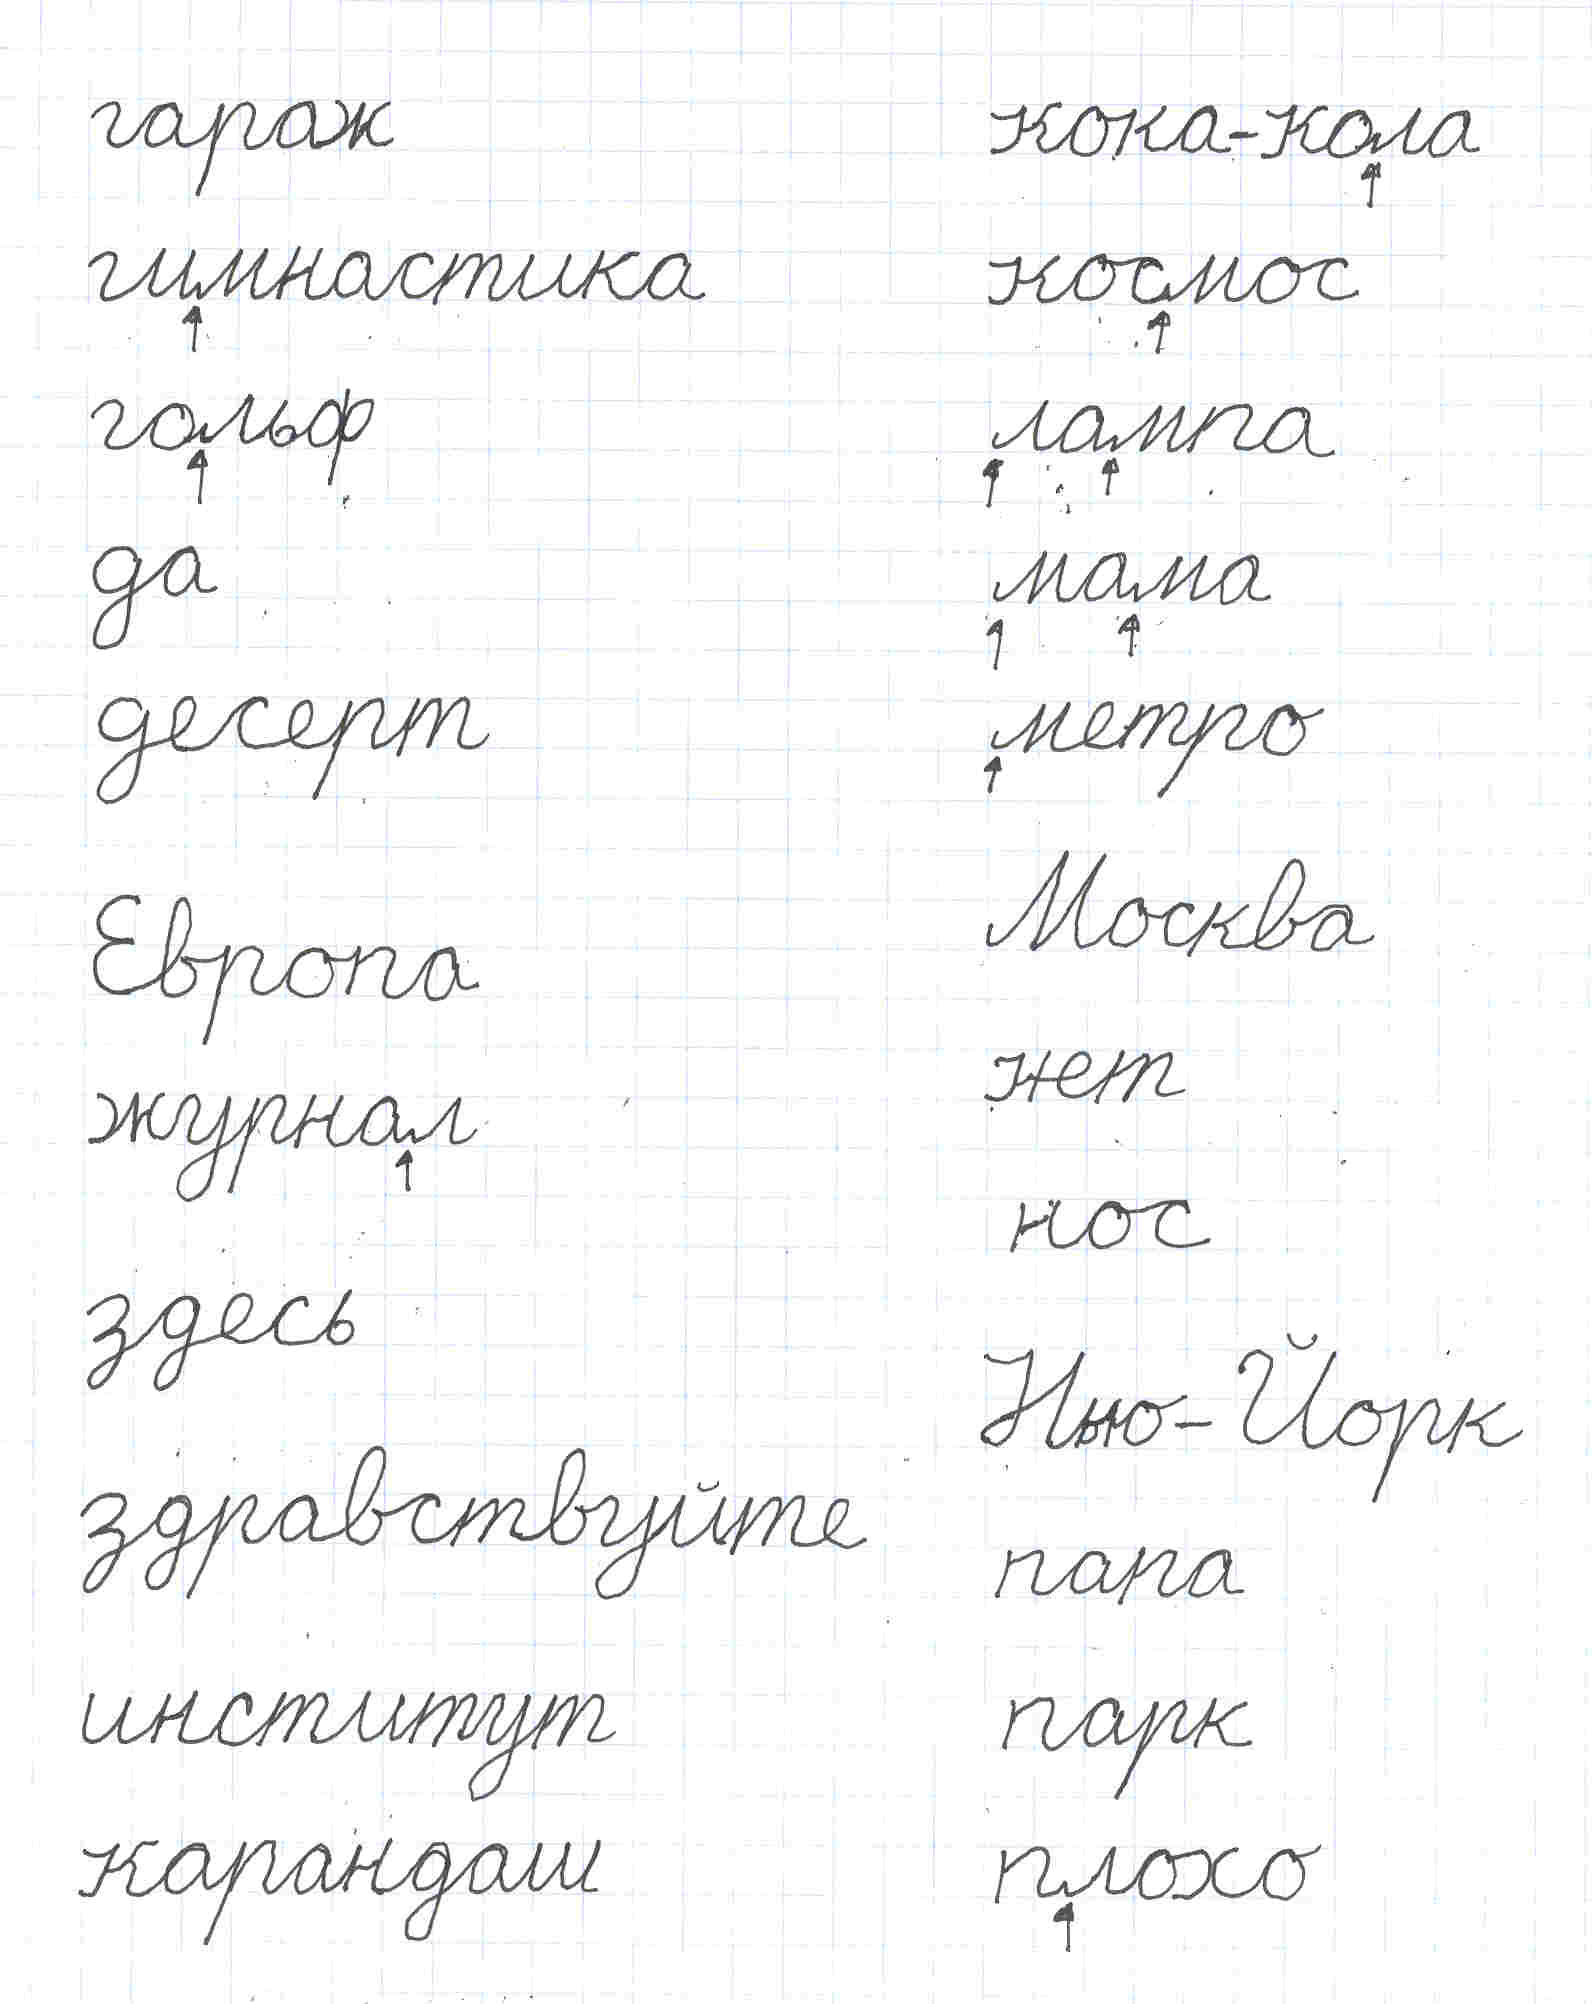 How to write cursive cyrillic - Is it weird to use the